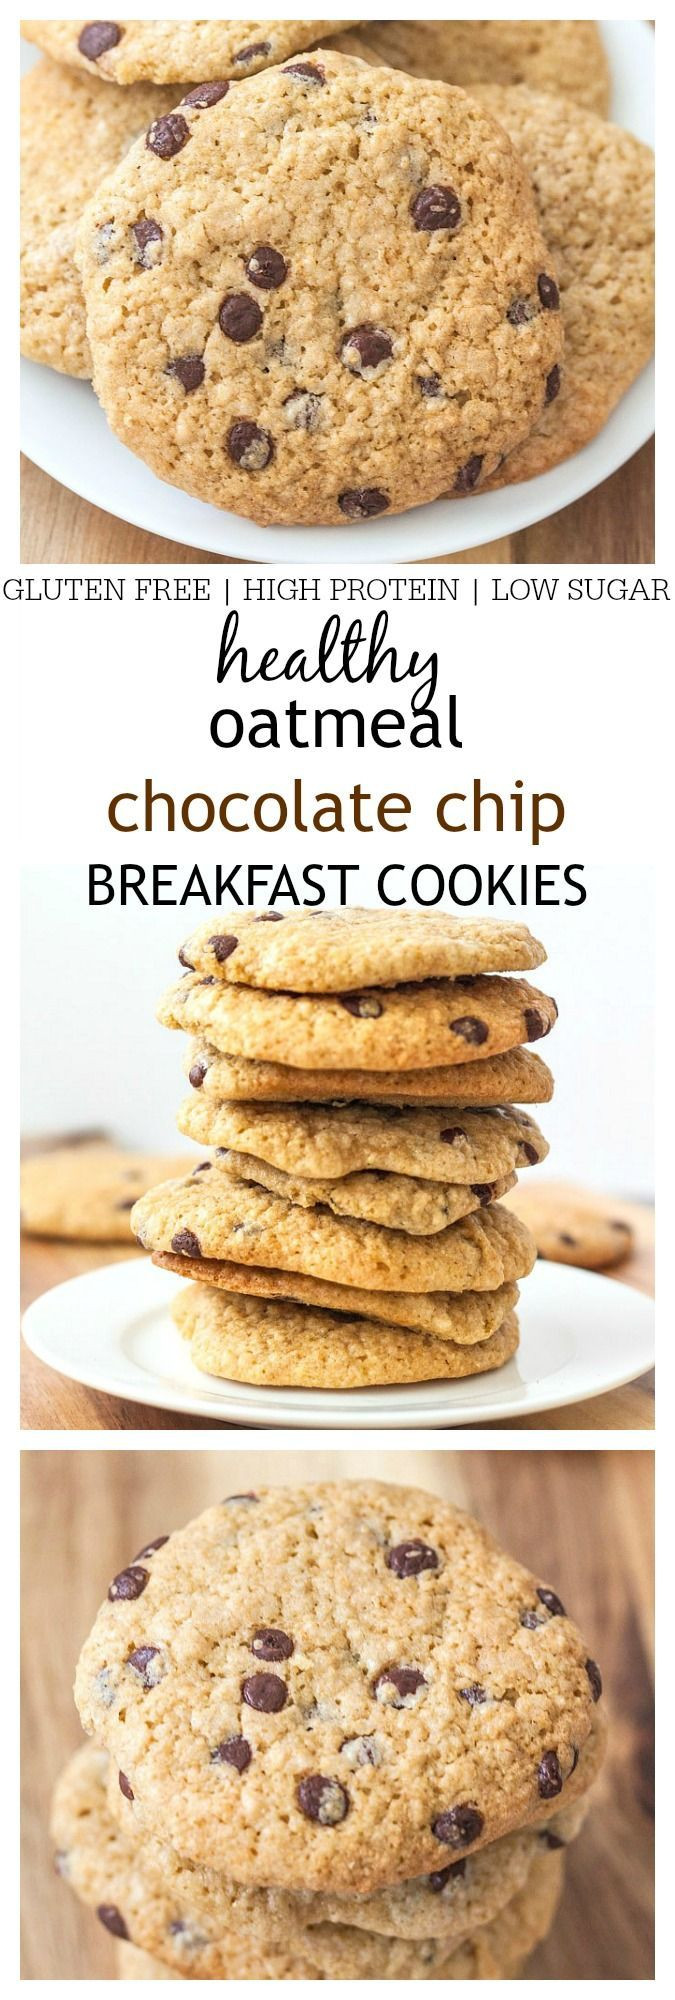 Healthy Gluten Free Oatmeal Cookies  17 Best images about Breakfast that Rachie might eat